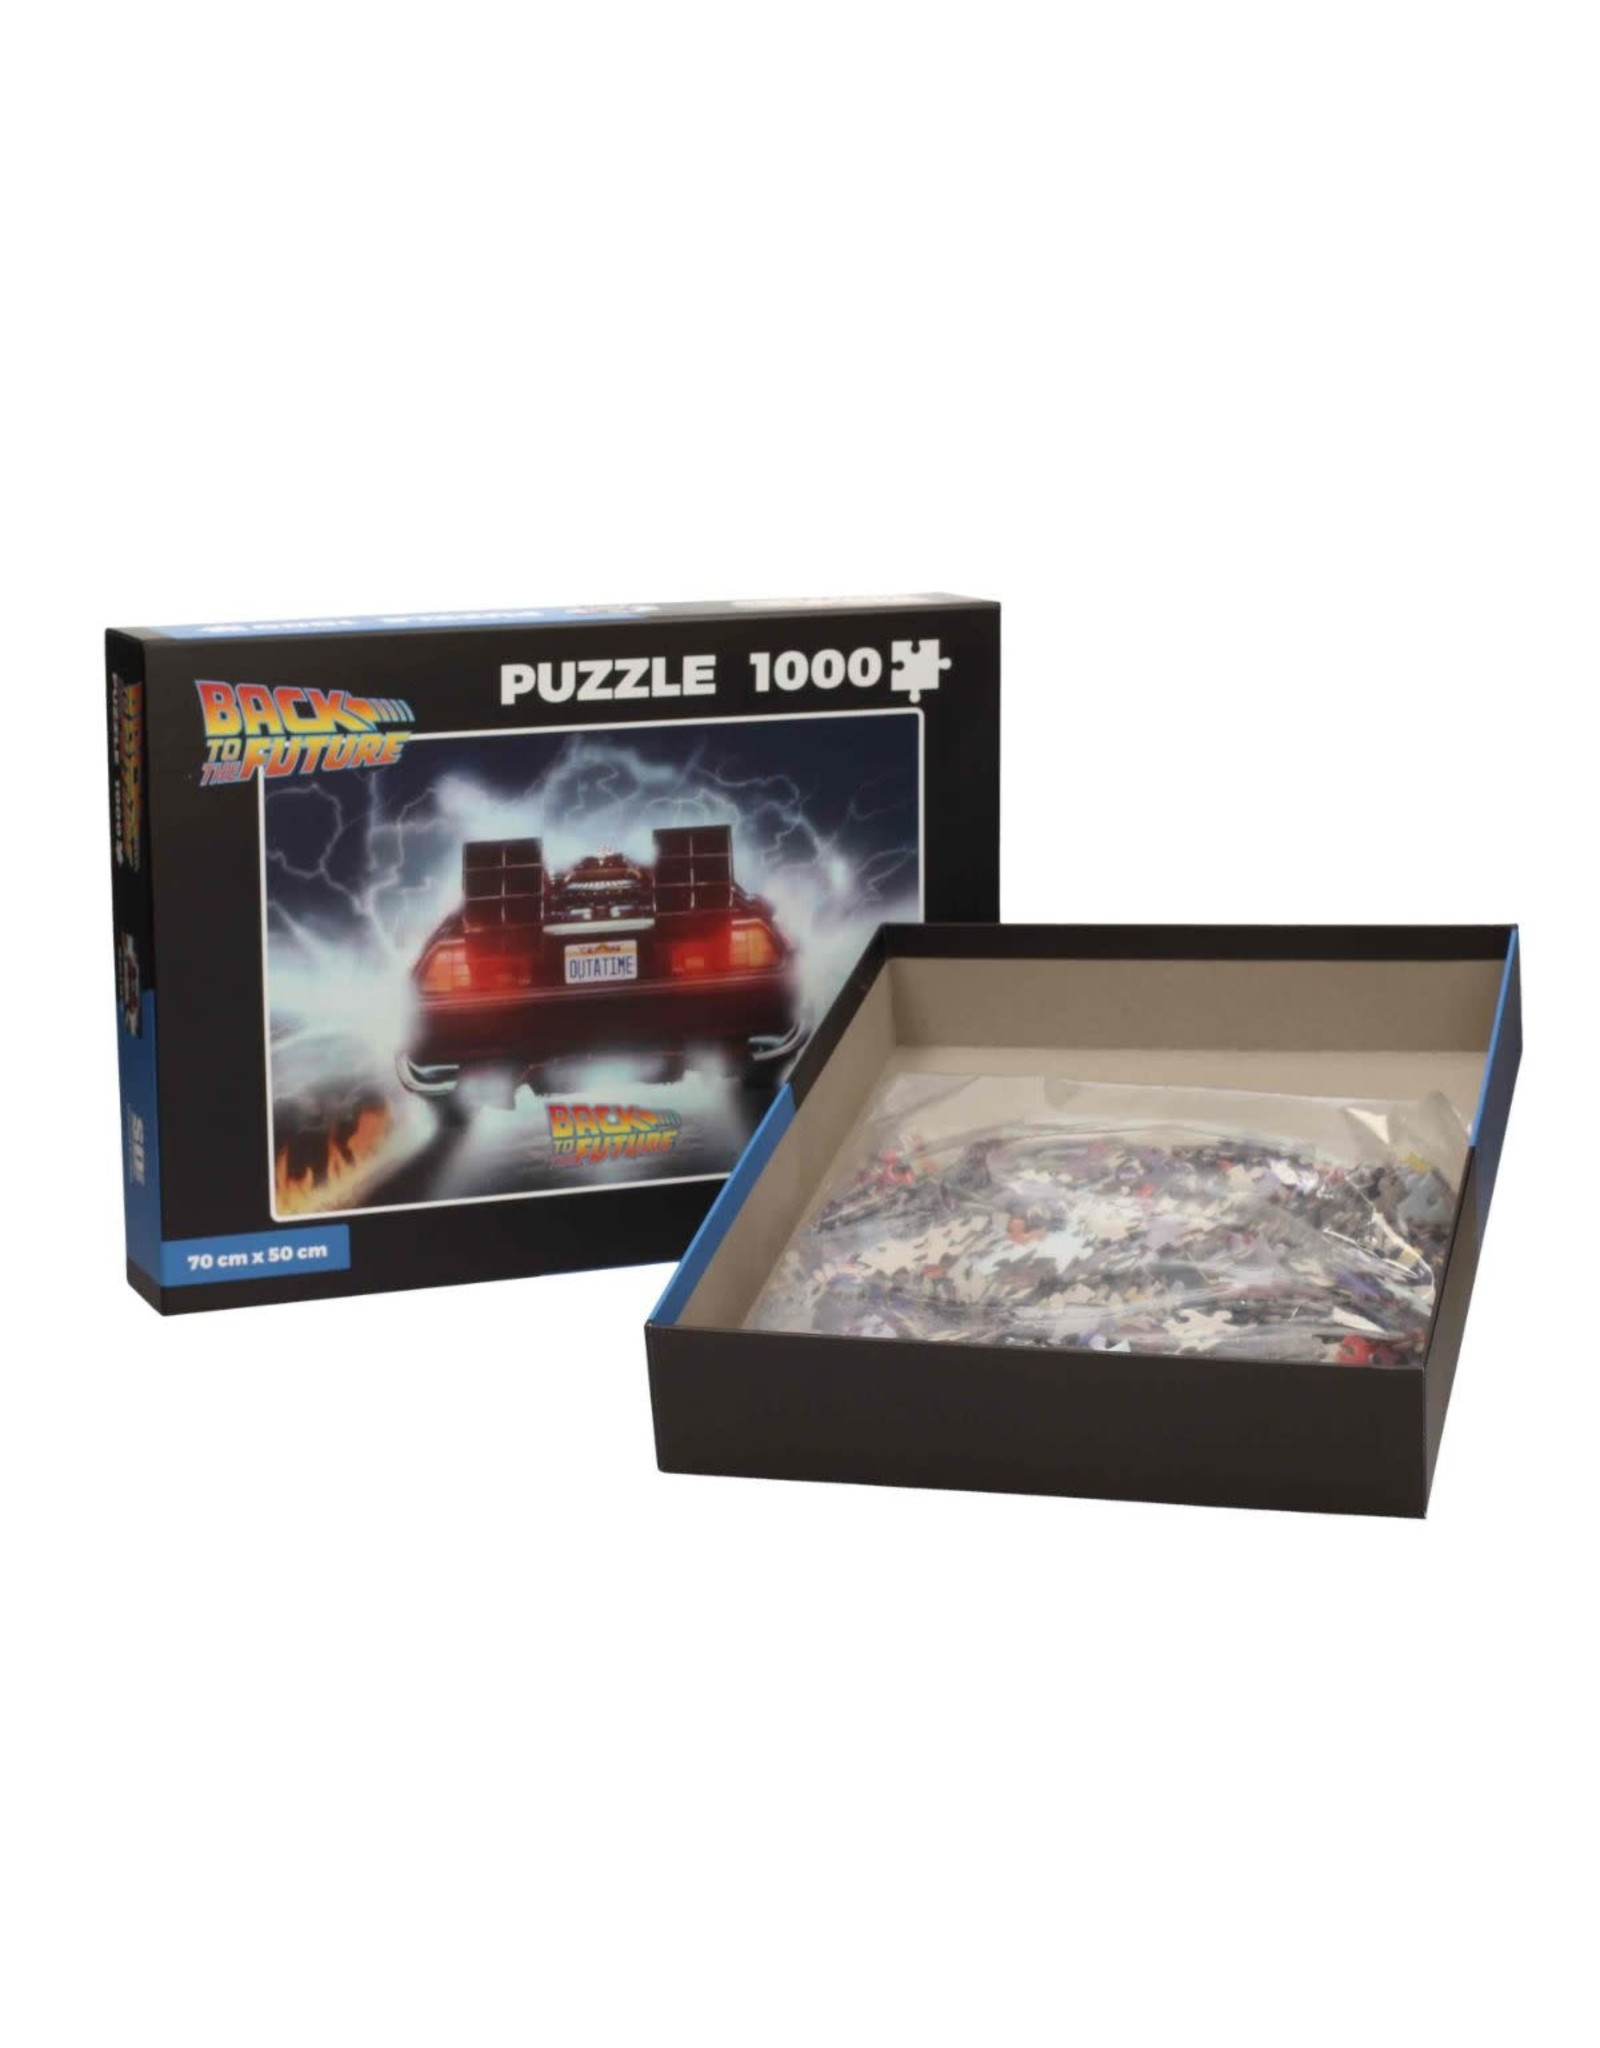 SD Toys BACK TO THE FUTURE Puzzle 1000P - Delorean Out of Tme